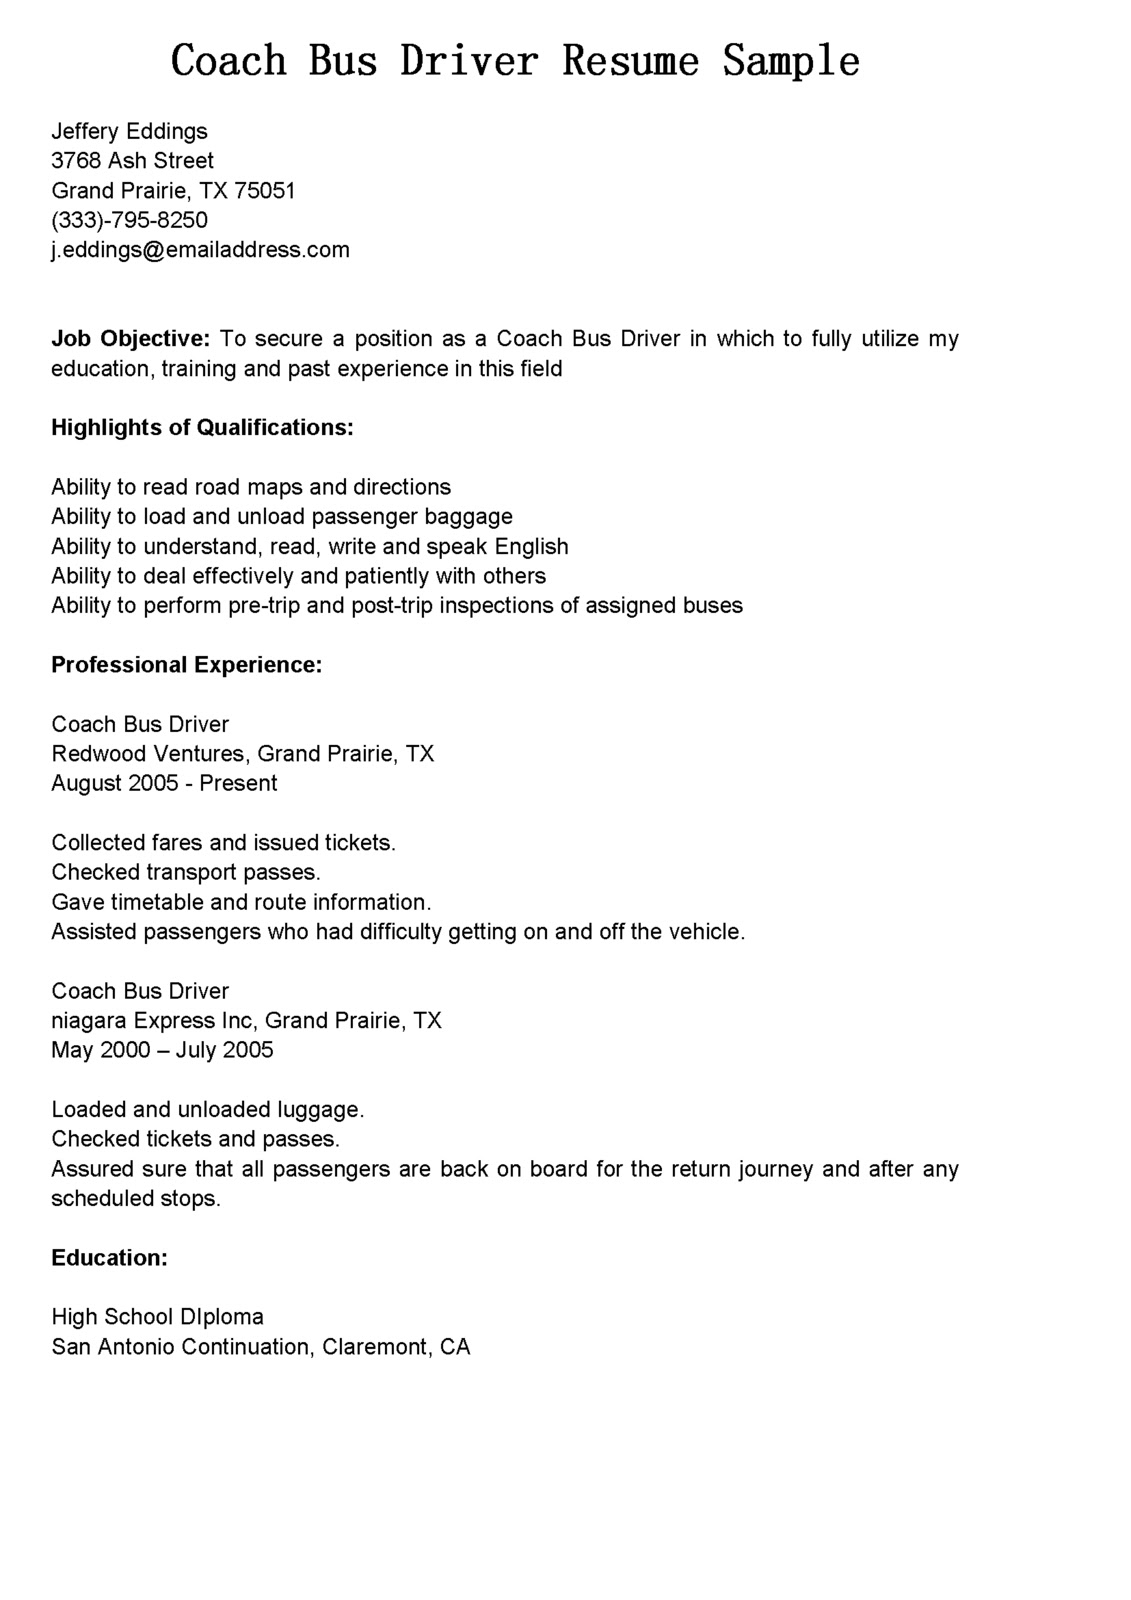 driver resumes coach bus resume sample for position librarian chemistry professor Resume Resume For Bus Driver Position